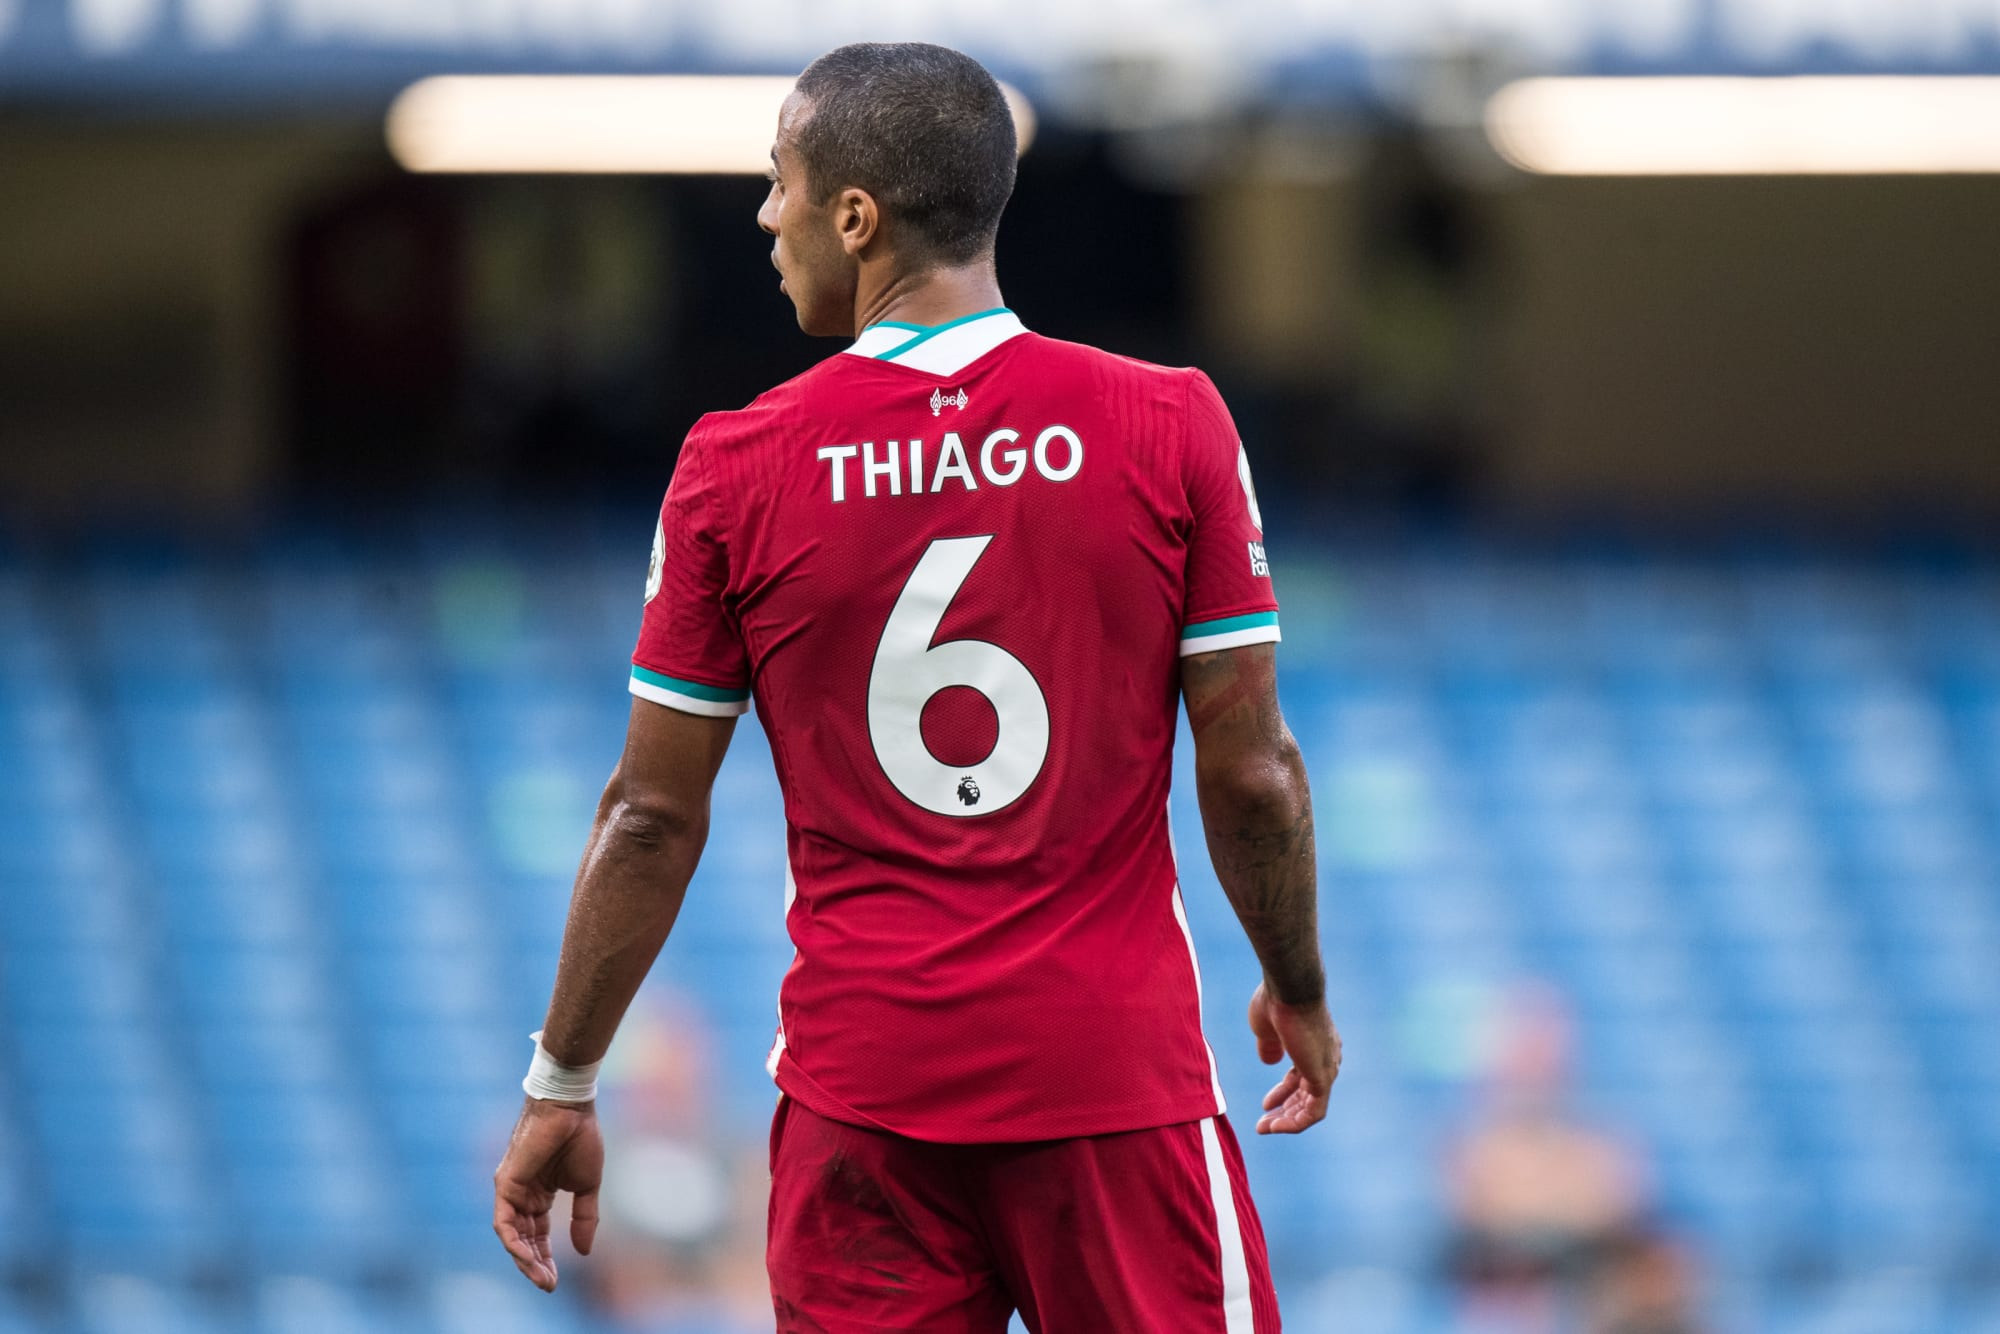 A Mascherano and Alonso hybrid! Thiago breaks Liverpool Twitter